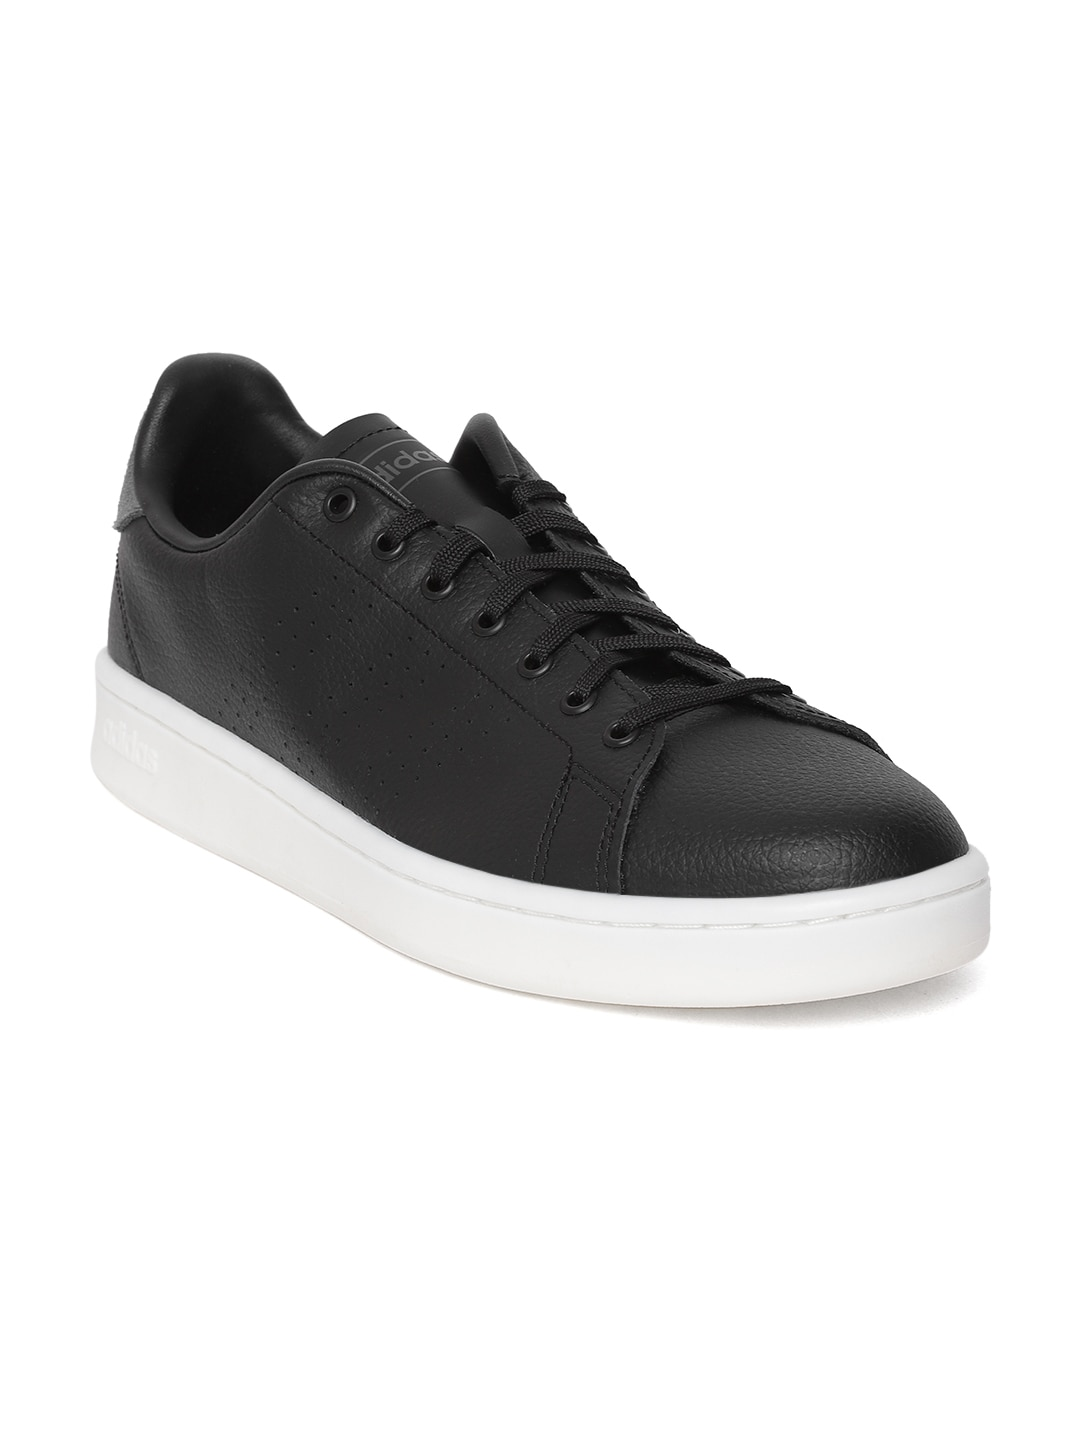 f102a0e97bbd1 Adidas Leather Shoes - Buy Adidas Leather Shoes Online in India